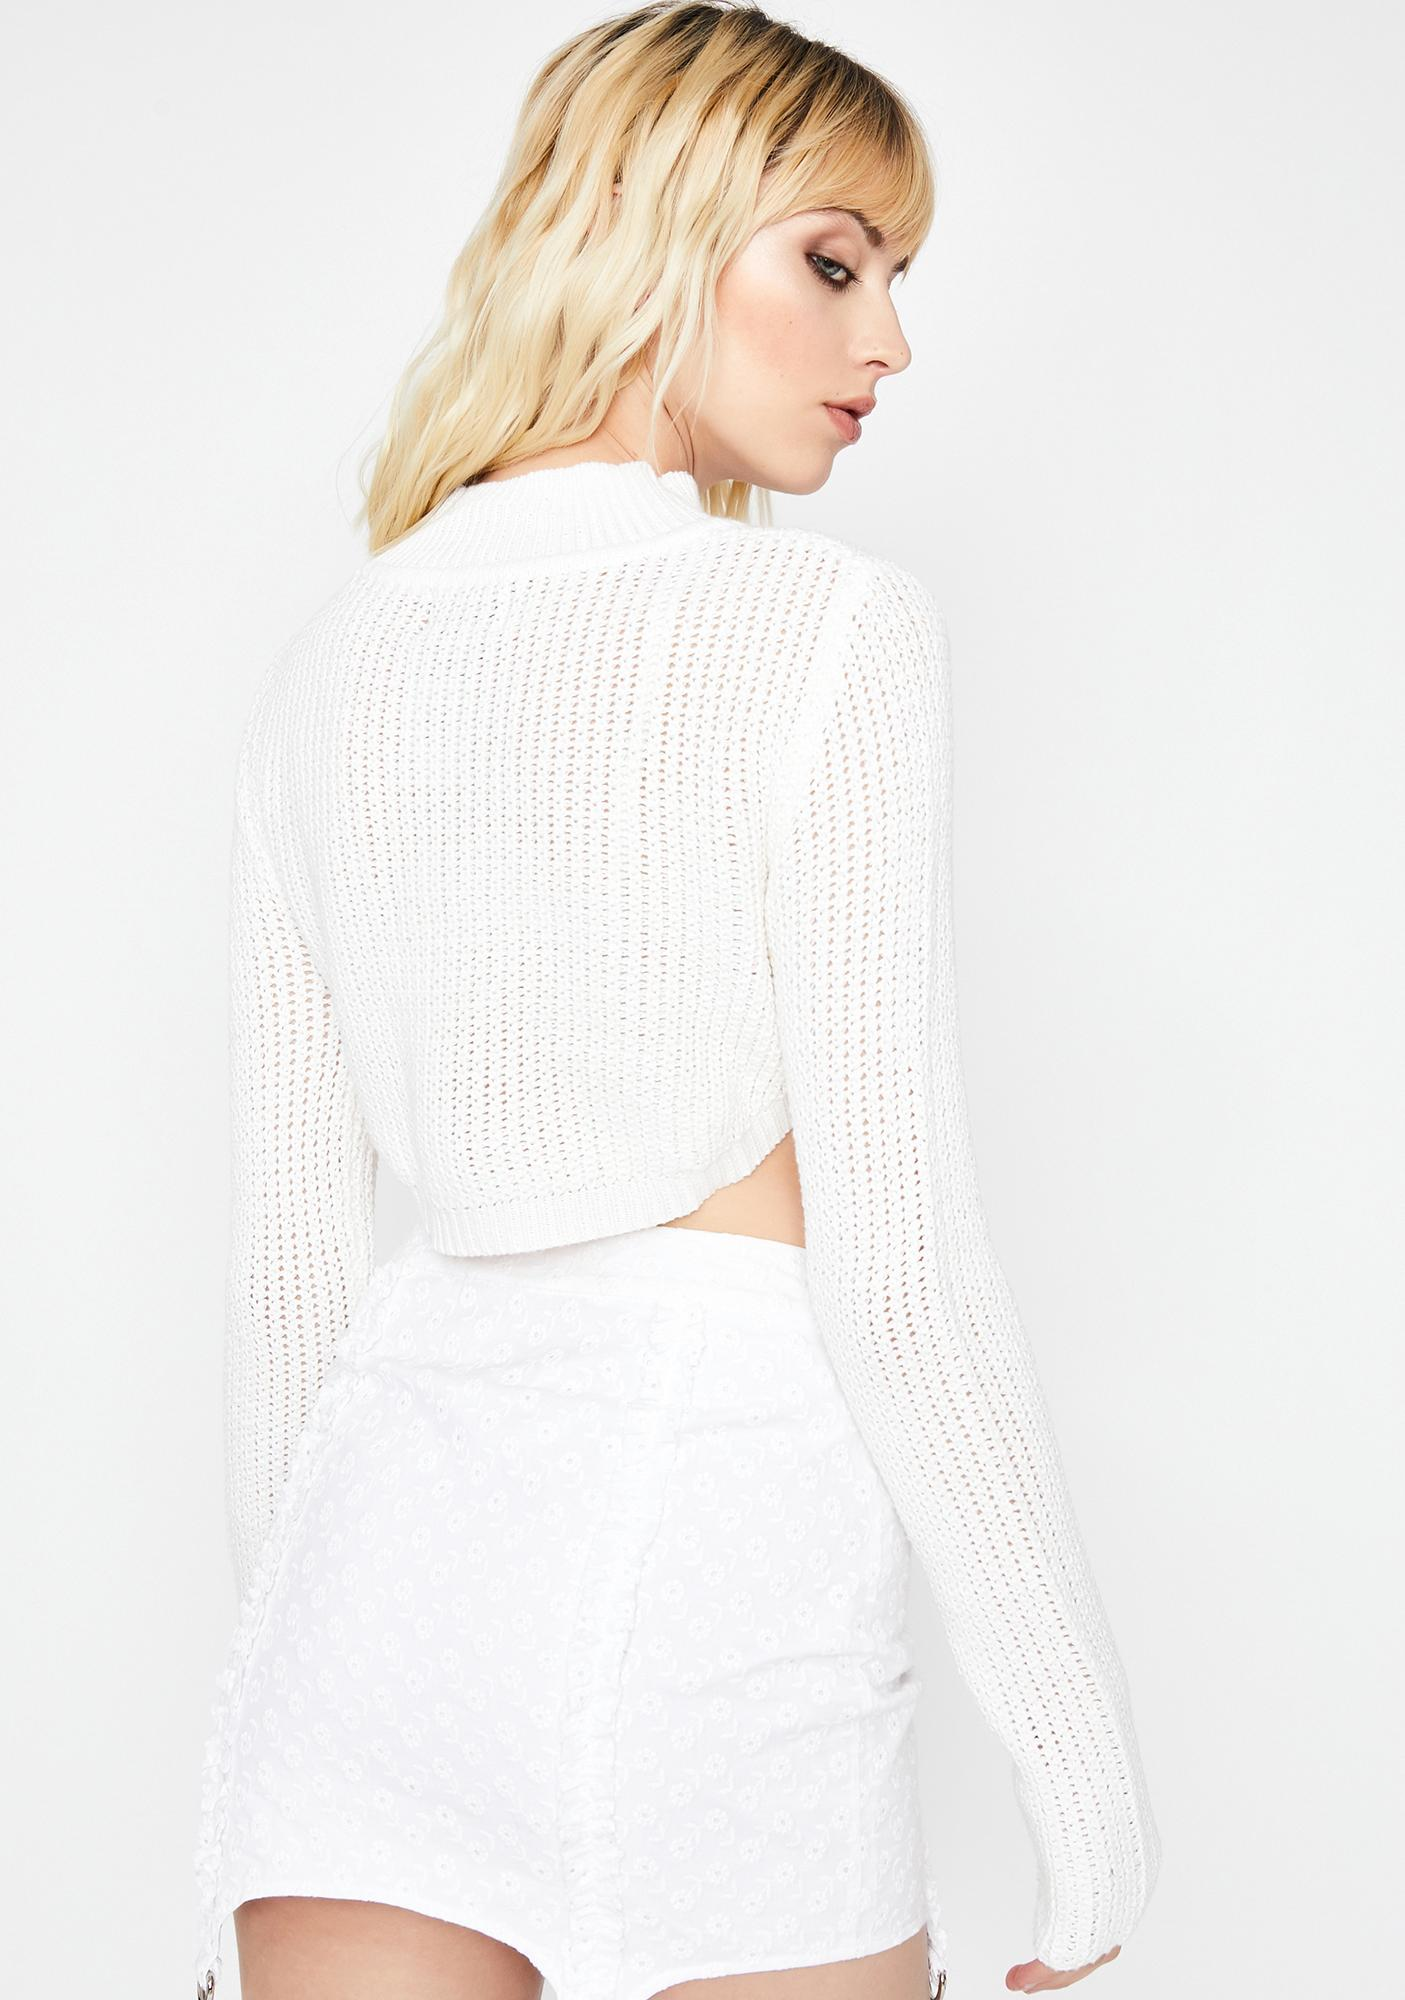 Frosty Close To The Edge Cropped Sweater